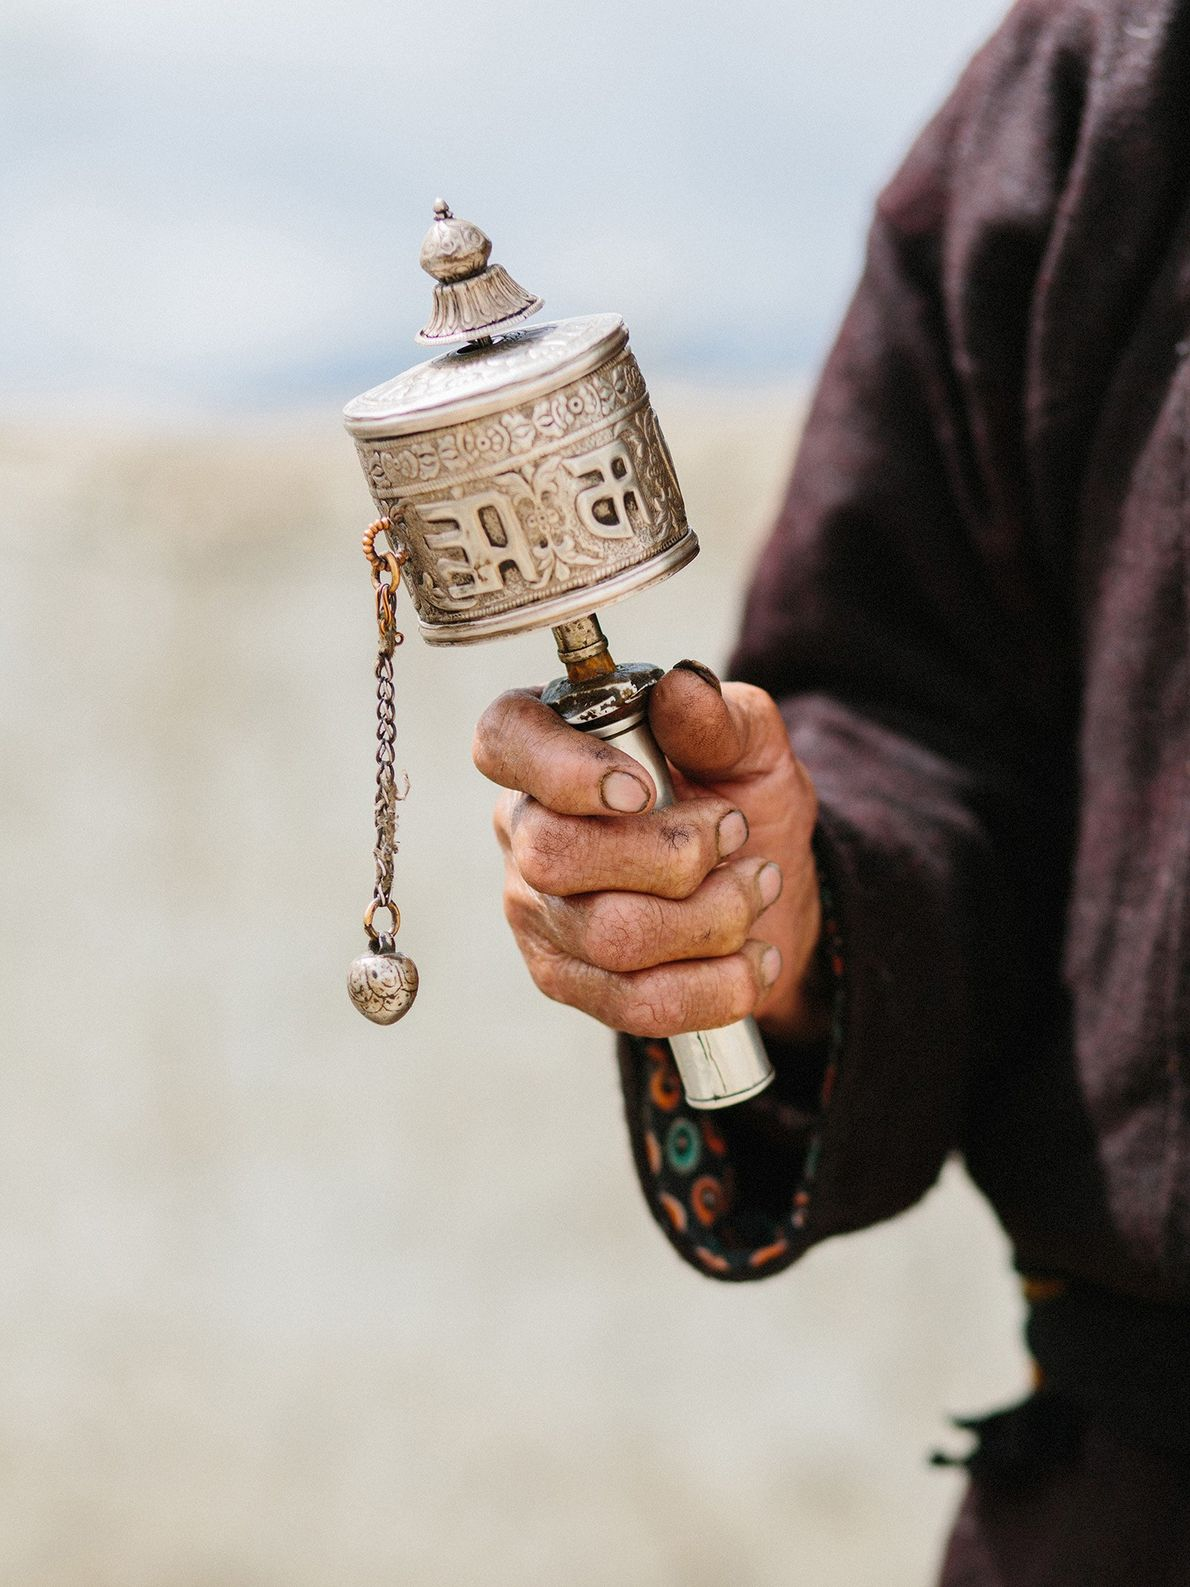 Tibetan prayer wheels, called mani wheels, are believed to spread spiritual blessings and well-being.